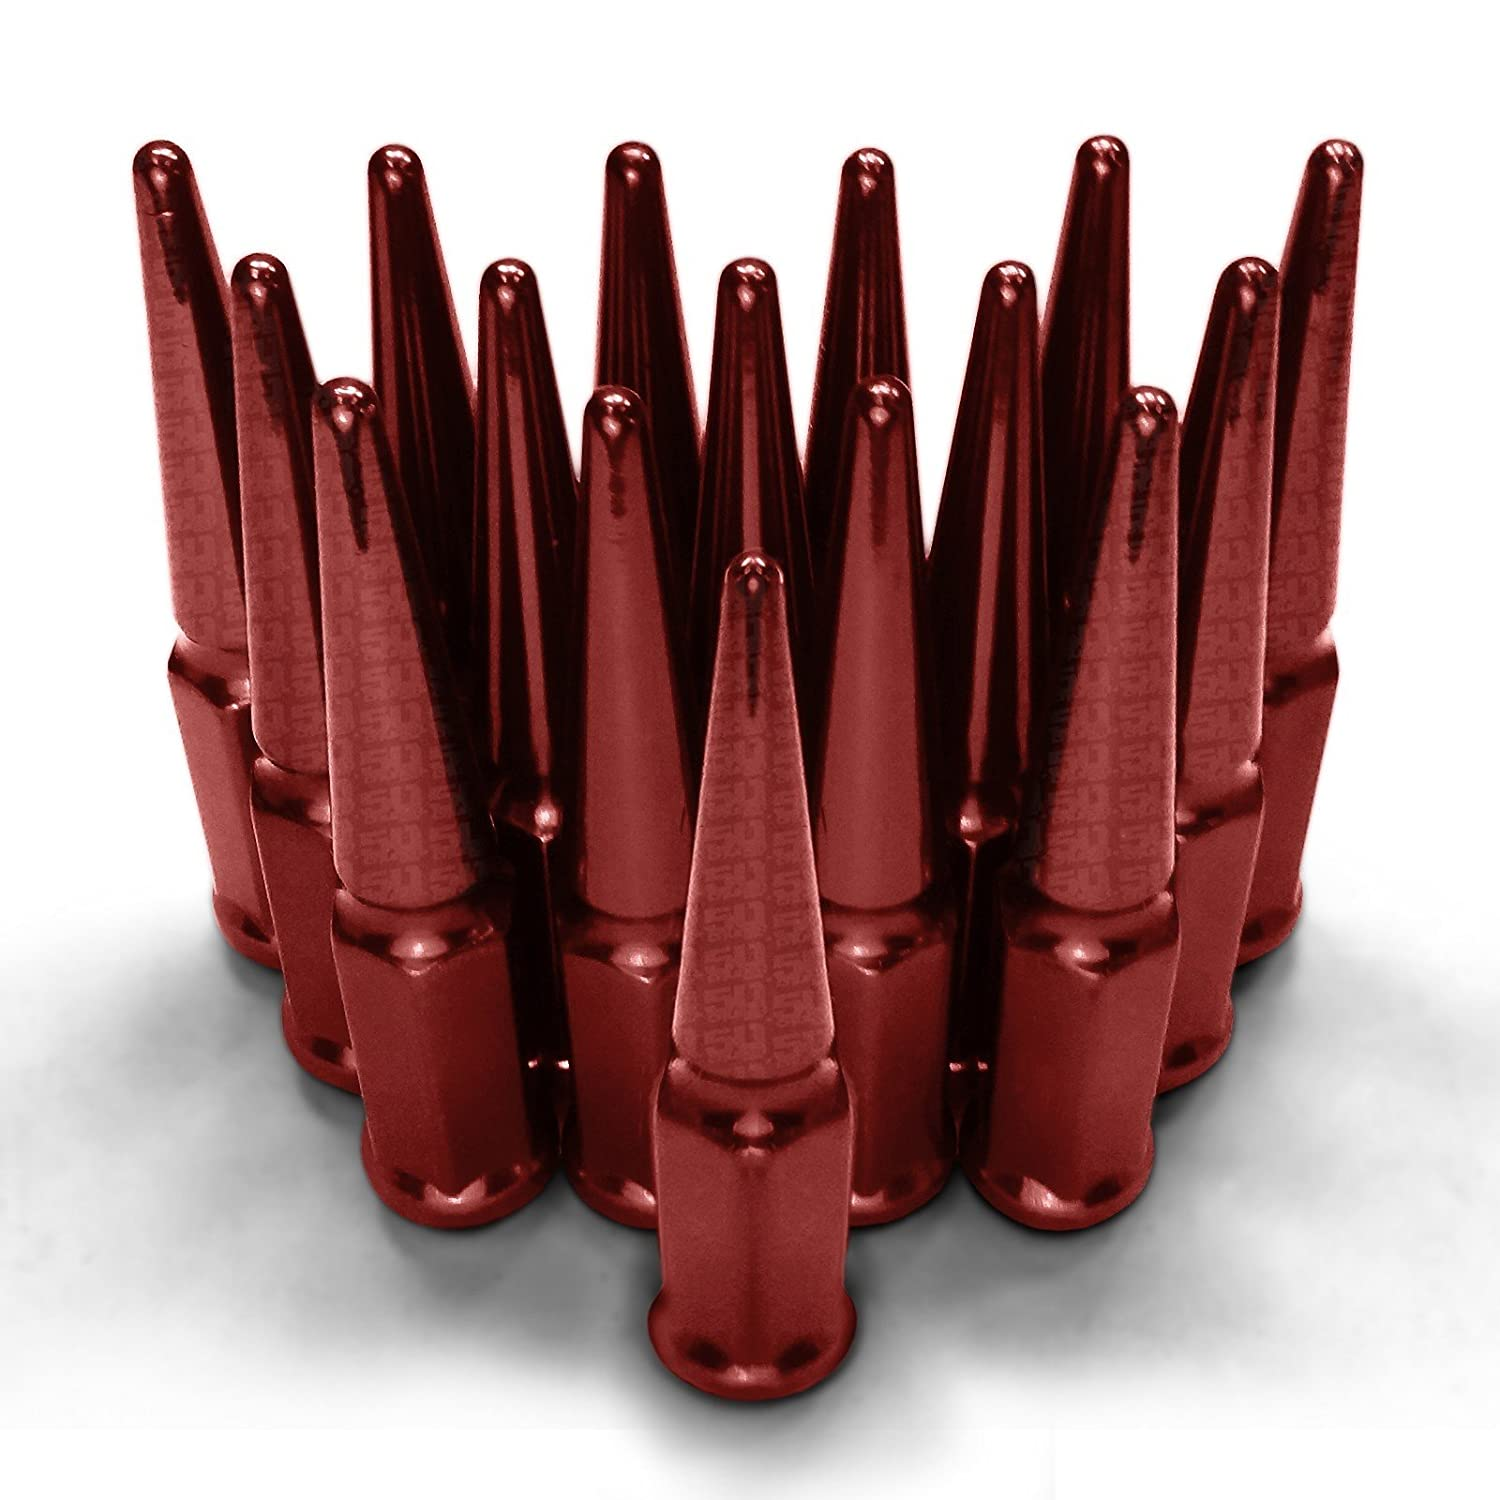 50 Caliber Racing Set of 16 Solid Steel Spiked Lugs Nut Kit 10 x 1.25mm RH Thread Pitch Size fits Wheels with 60 Degree Conical Lug Nut Seats Red Finish 5296C1